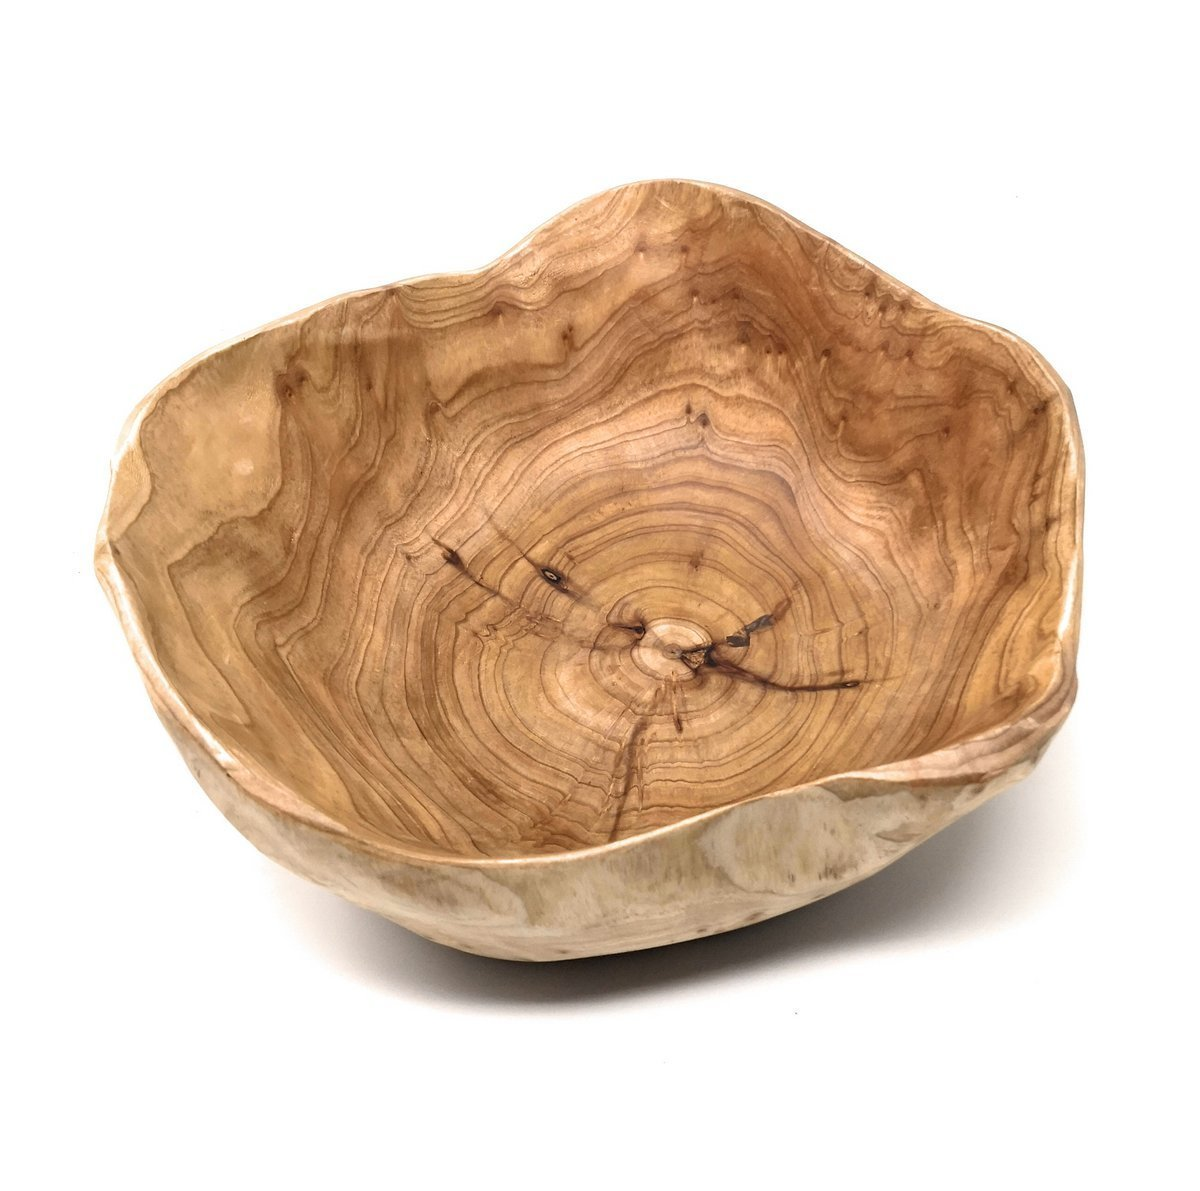 "THY COLLECTIBLES Wooden Bowl Handmade Storage Natural Root Wood Crafts Bowl Fruit Salad Serving Bowls (Large 12""-14"")"